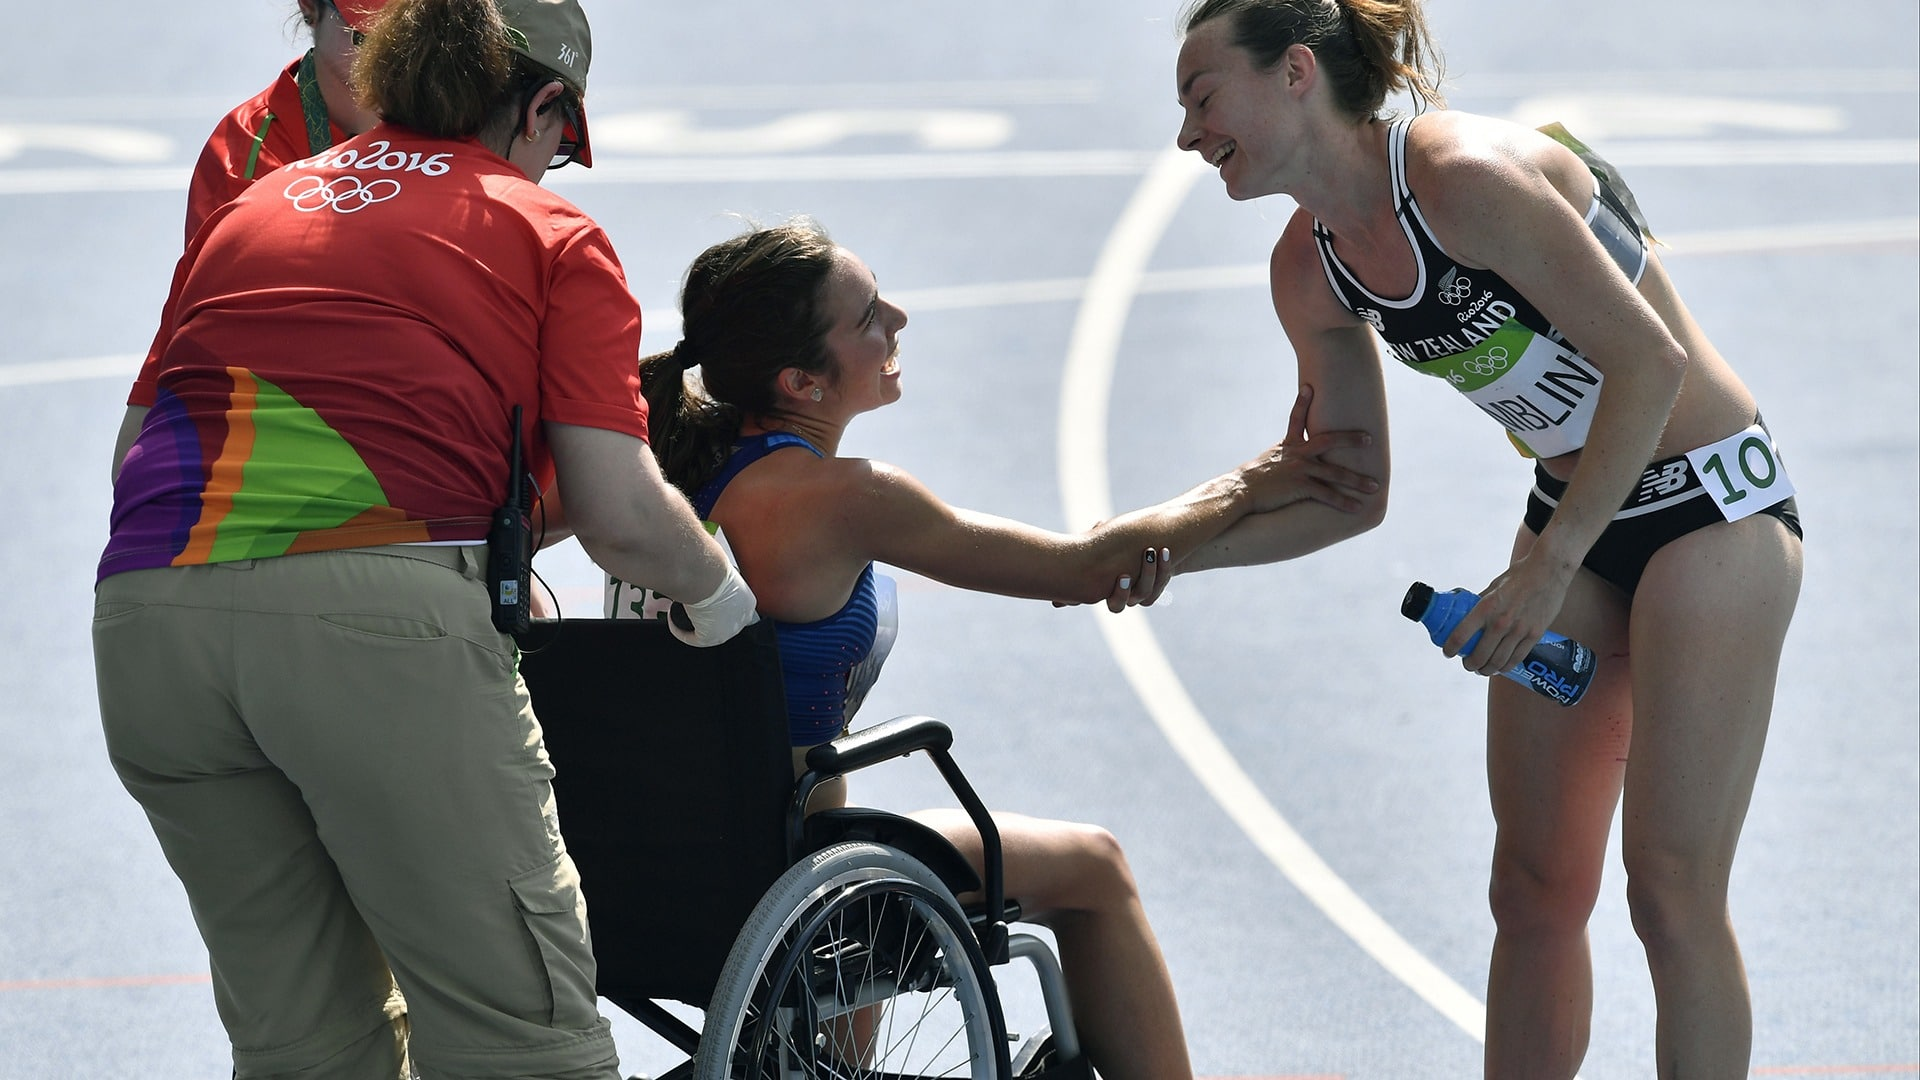 Abbey Cooper and Nikki Hamblin console each other after the race